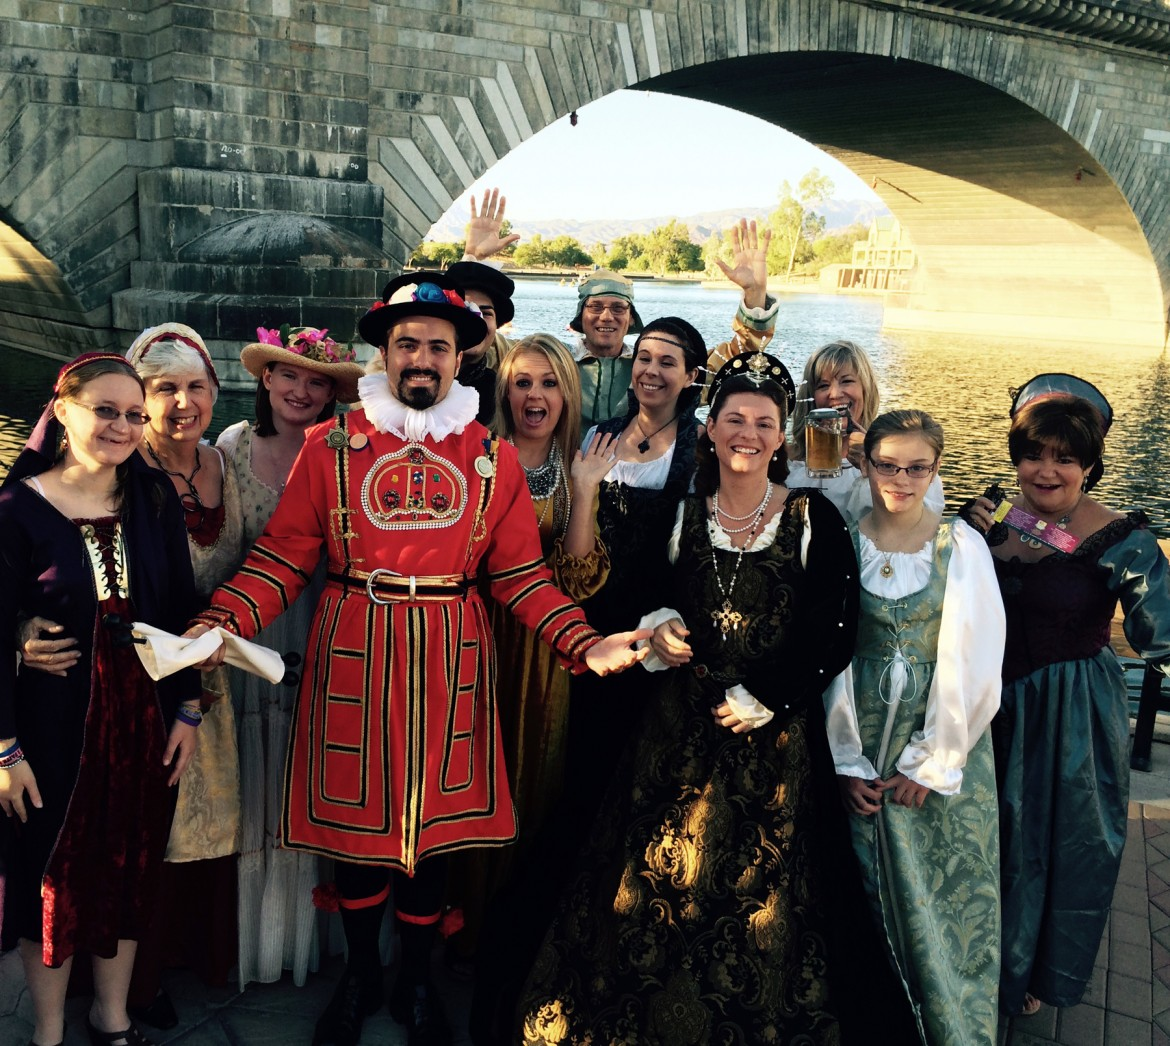 A number of volunteers, in period costume, announce the plans for the 1st Annual London Bridge Renaissance Faire. Naturally the announcement was made under the London Bridge.